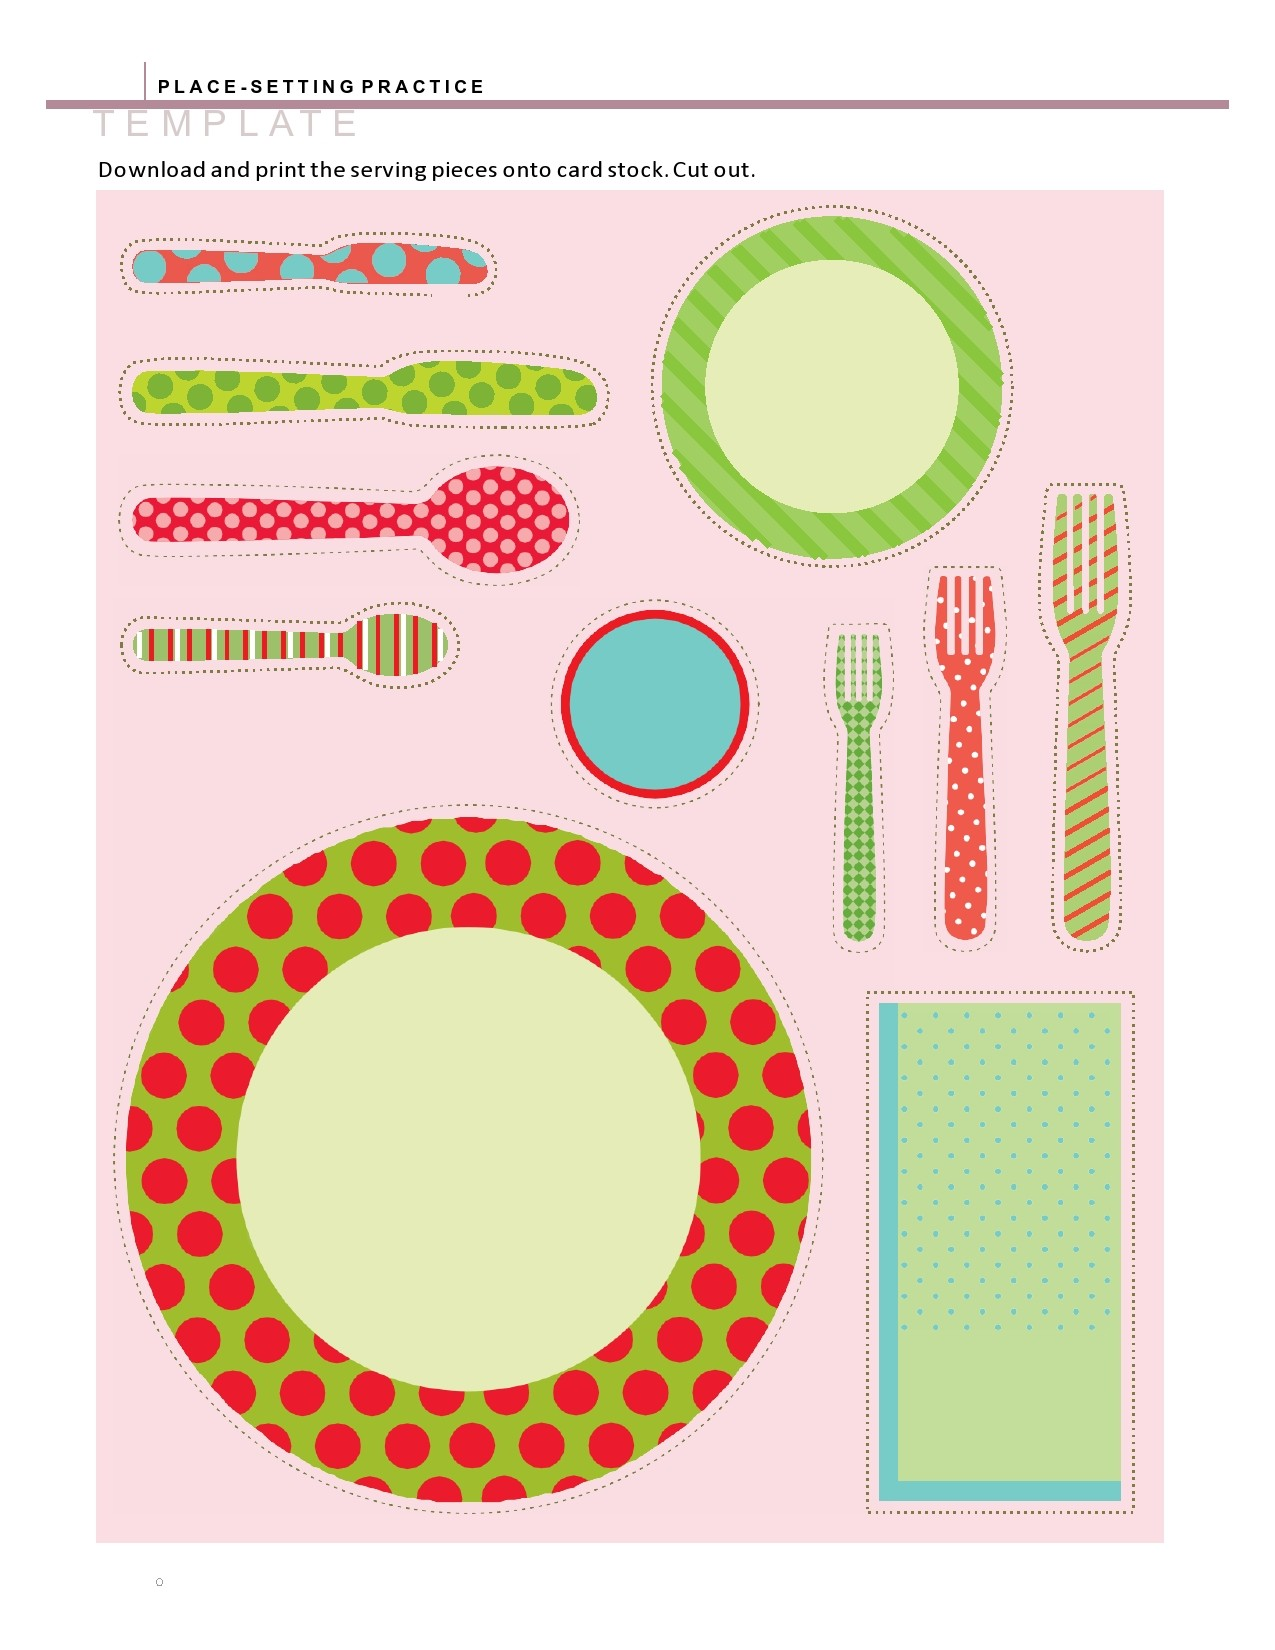 Free place setting template 02